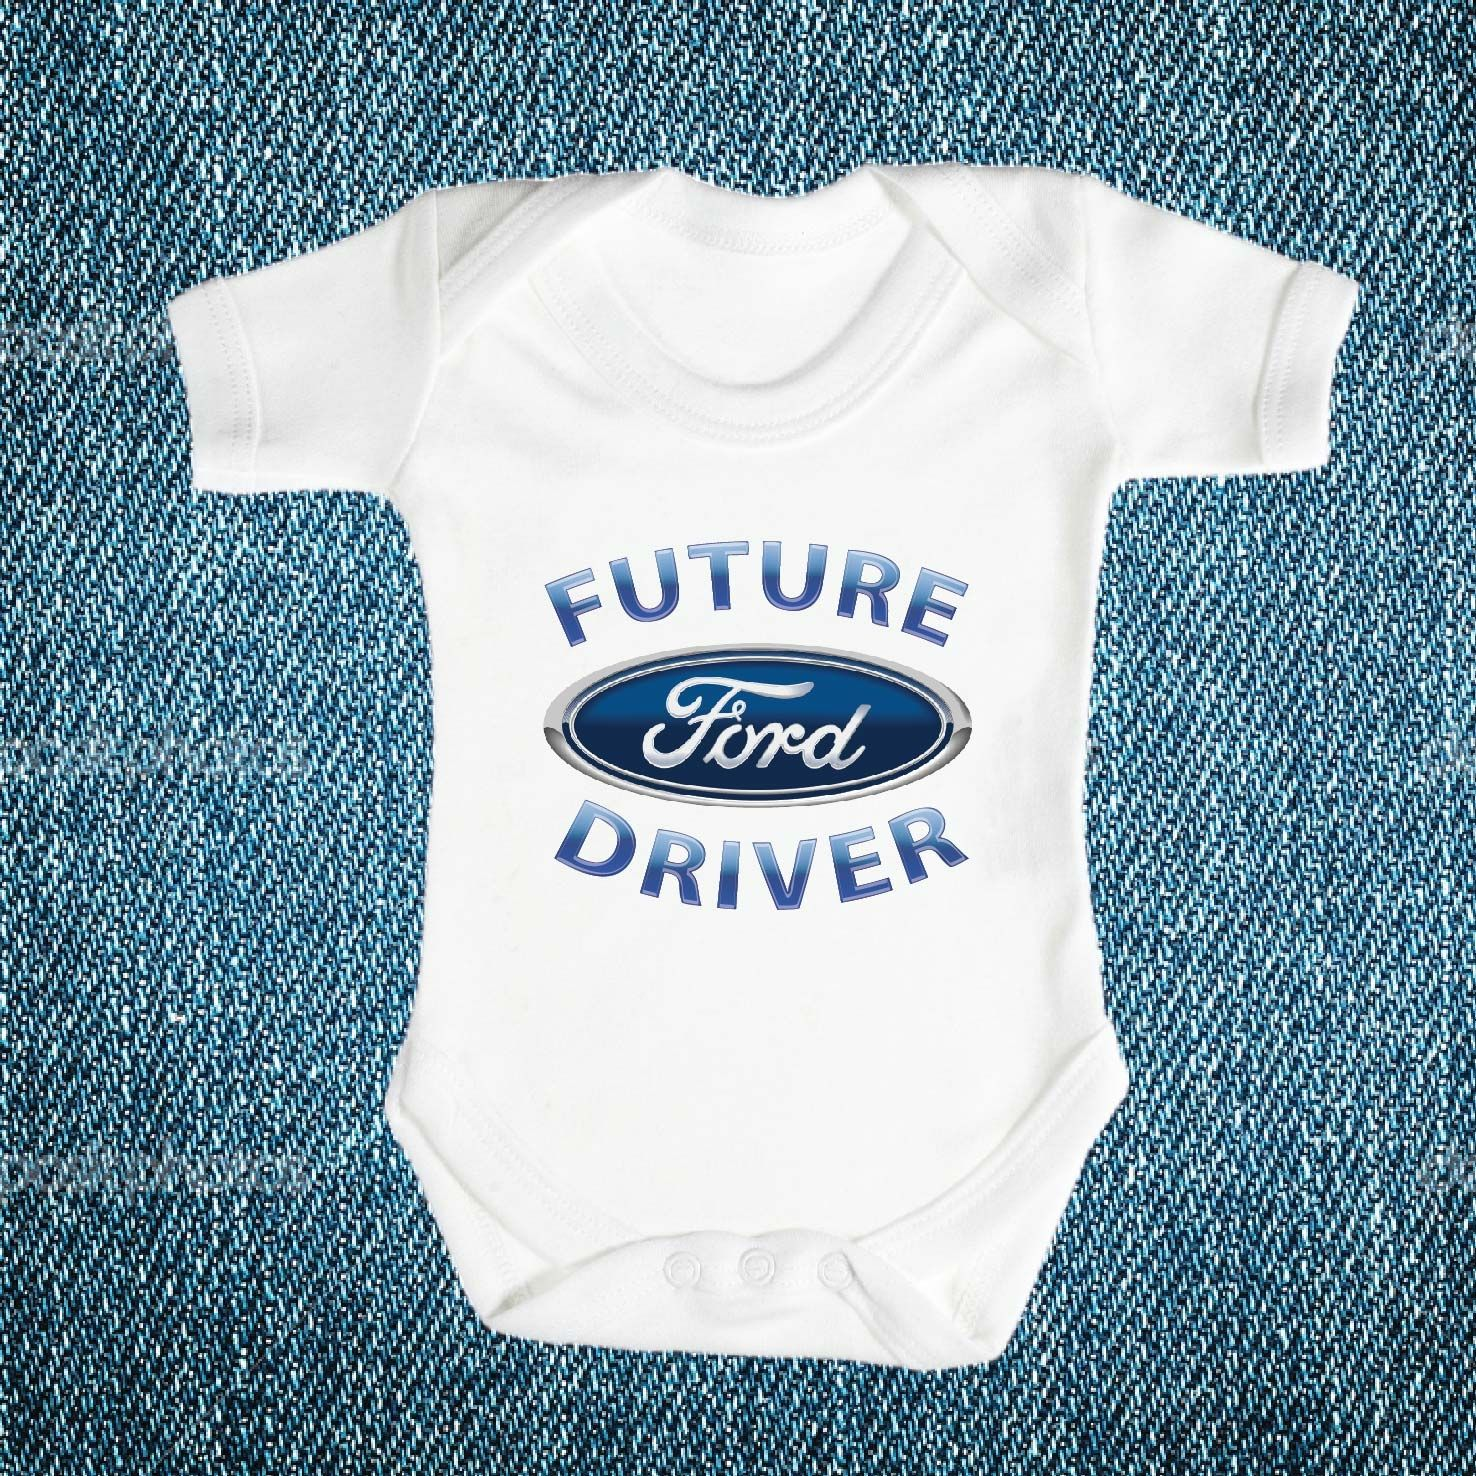 BABY BIB white cotton printed with FUTURE MUSTANG DRIVER  baby bib